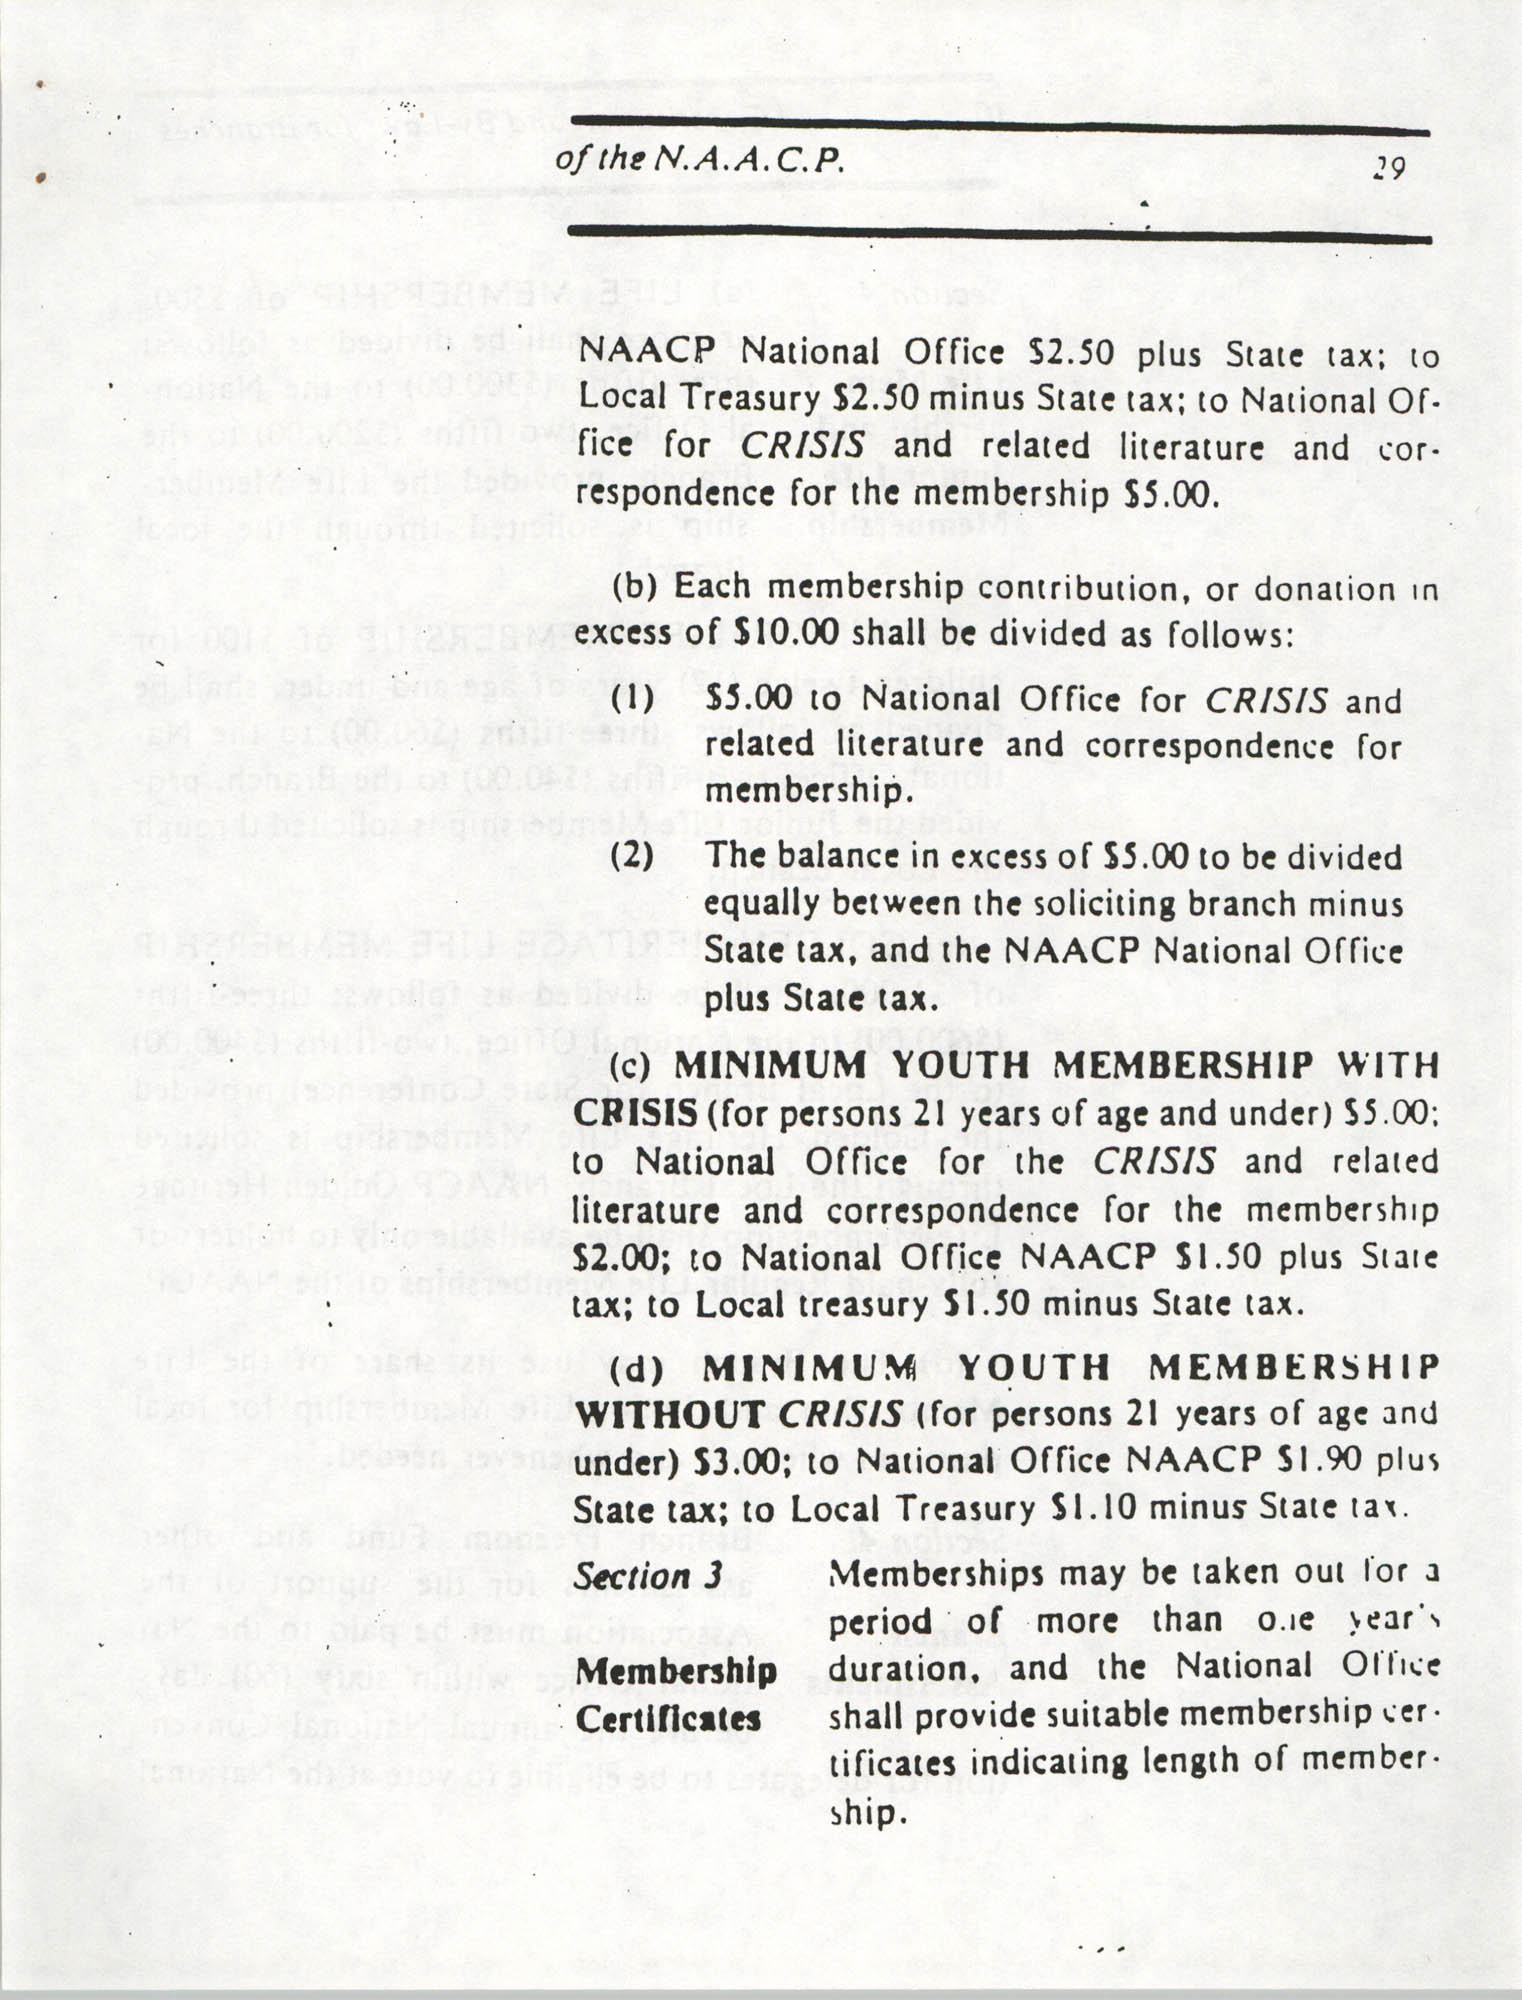 Constitution and By-Laws for Branches of the NAACP, March 1992, Page 29